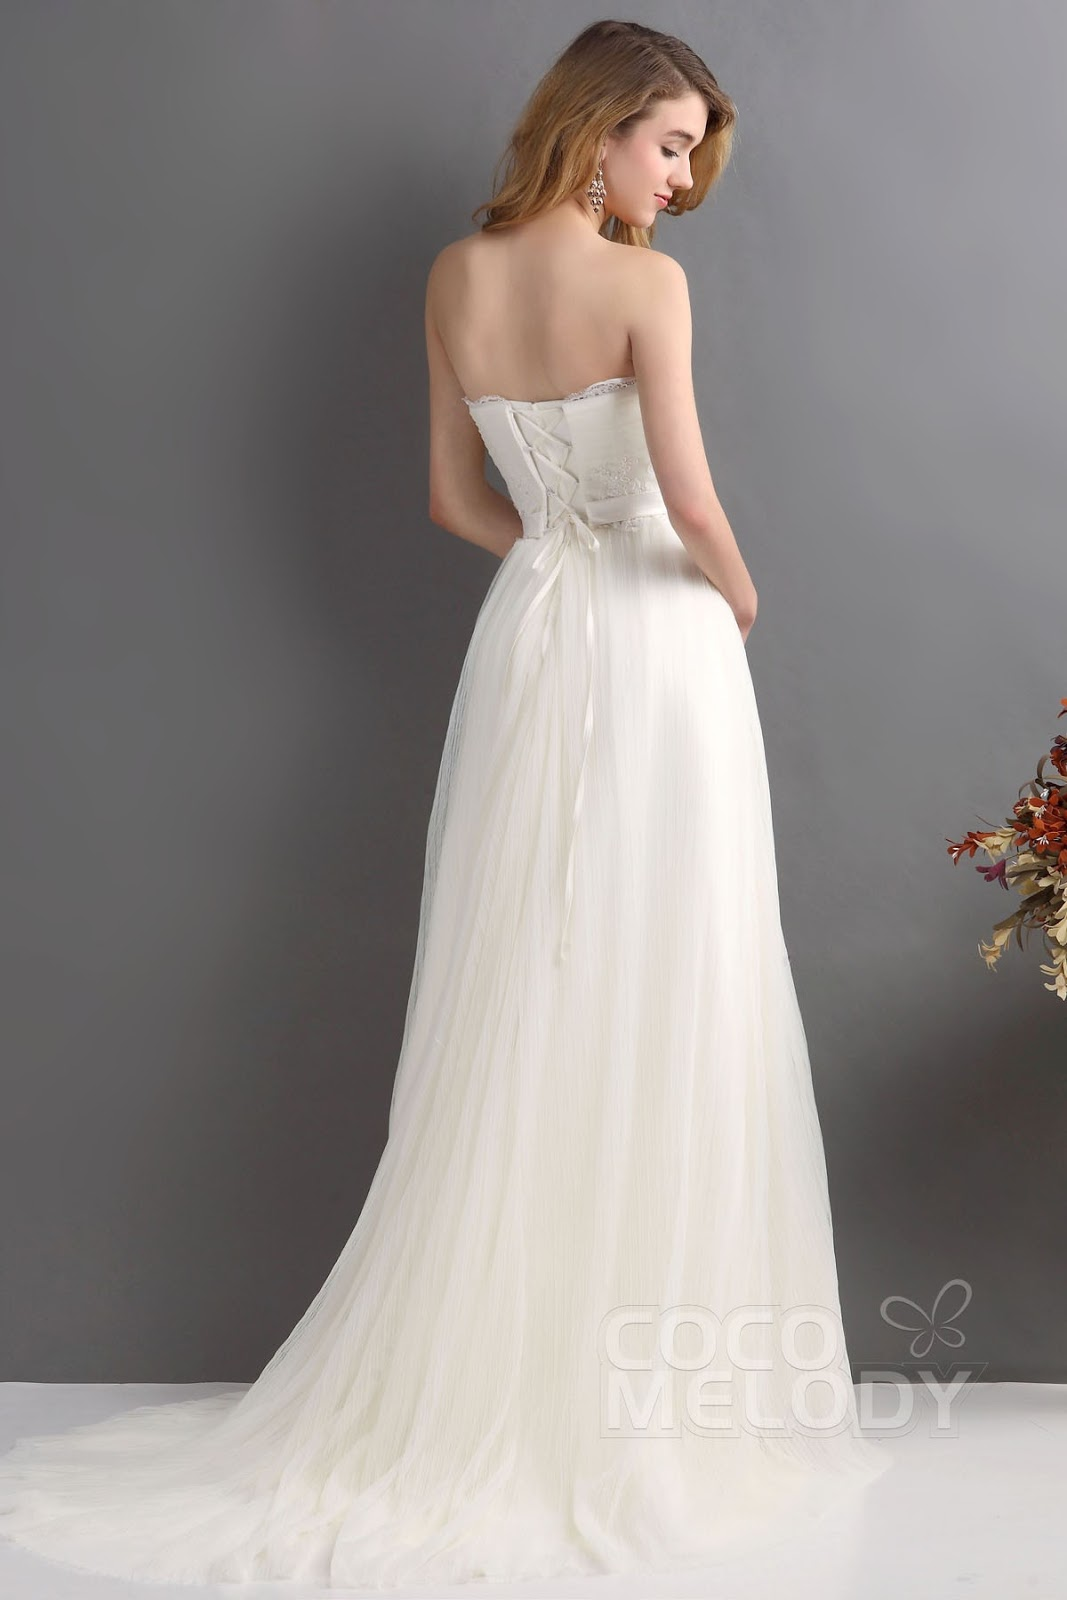 beautiful and elegant wedding dress: Engagement Gowns: Get good at ...